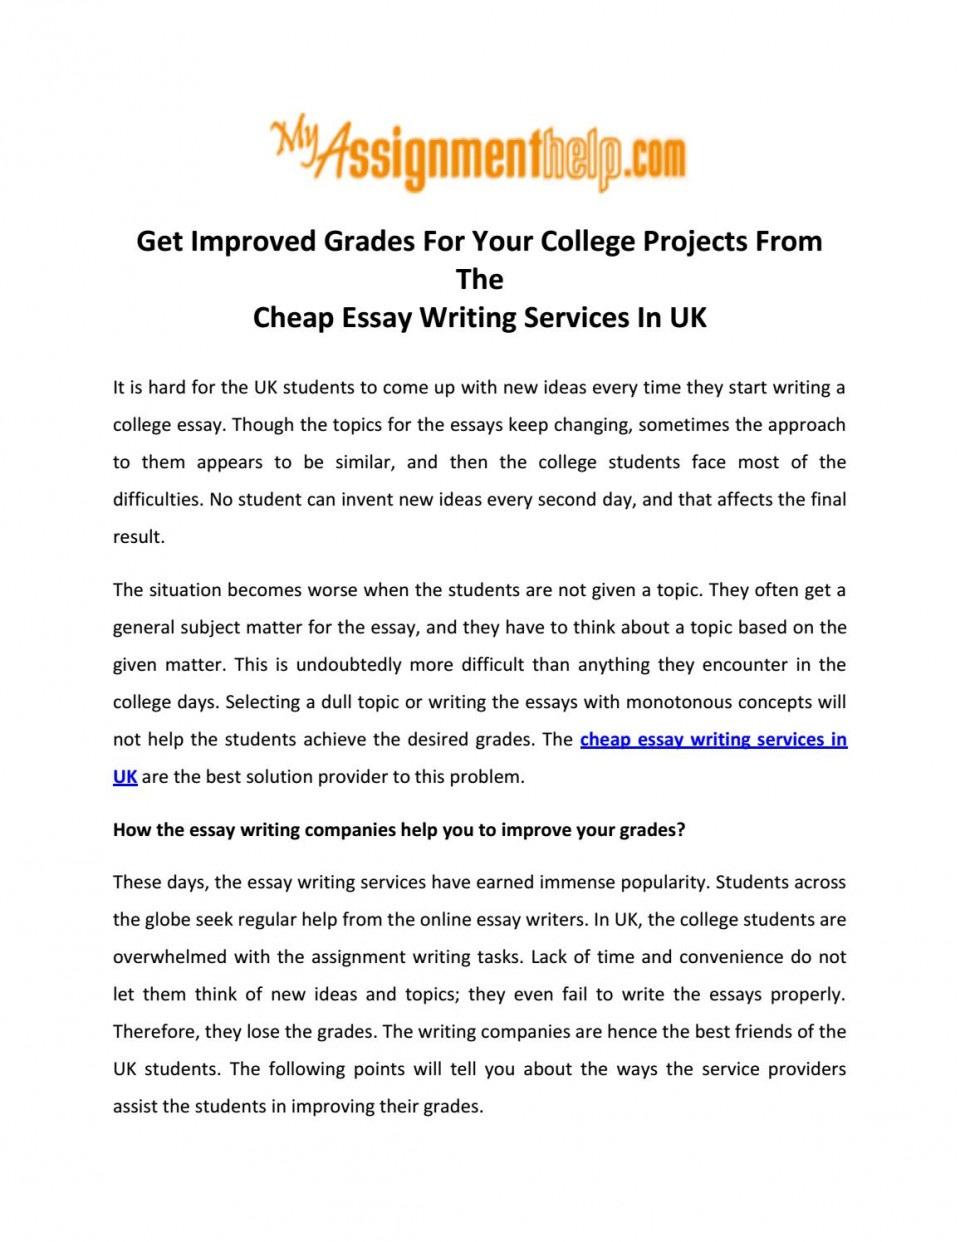 011 Page 1 Essay Example Cheap Writing Unusual Service Review Singapore 960